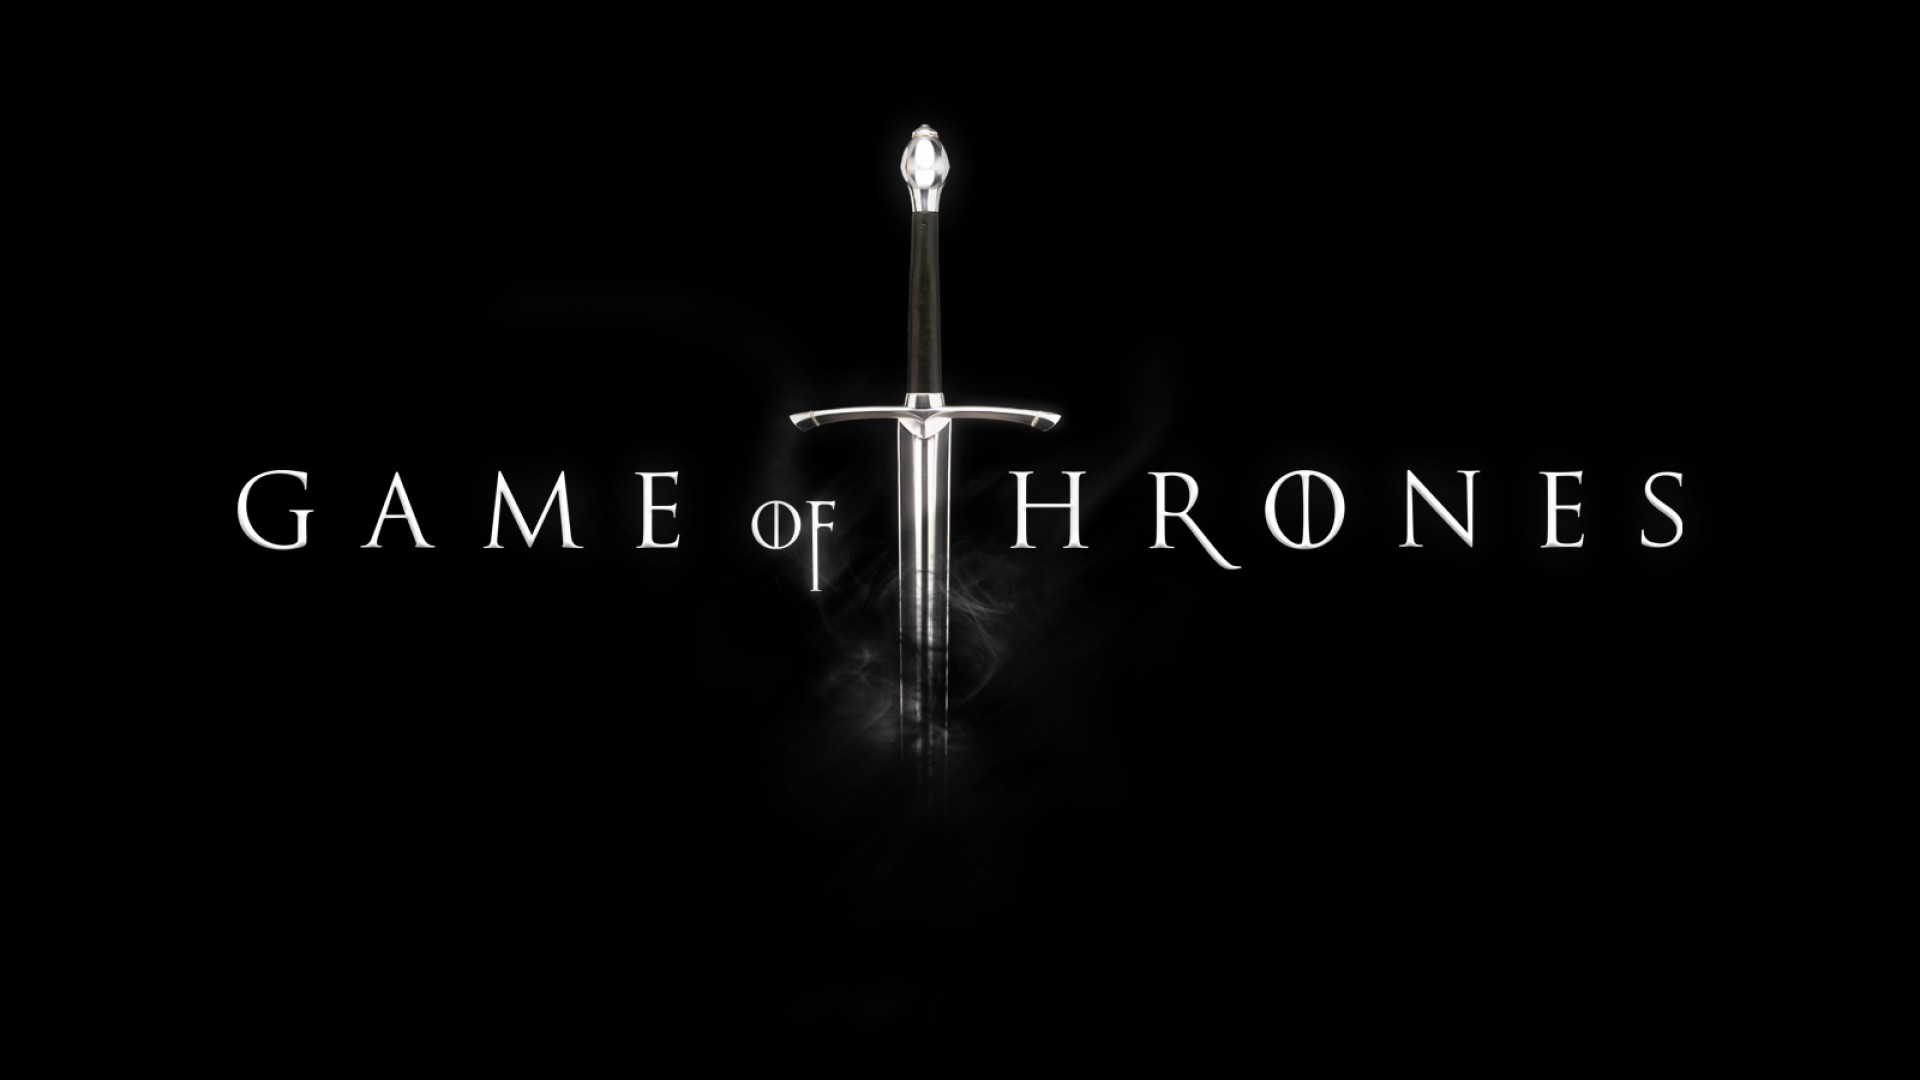 Game of Thrones Exclusive HD Wallpapers 1969 1920x1080